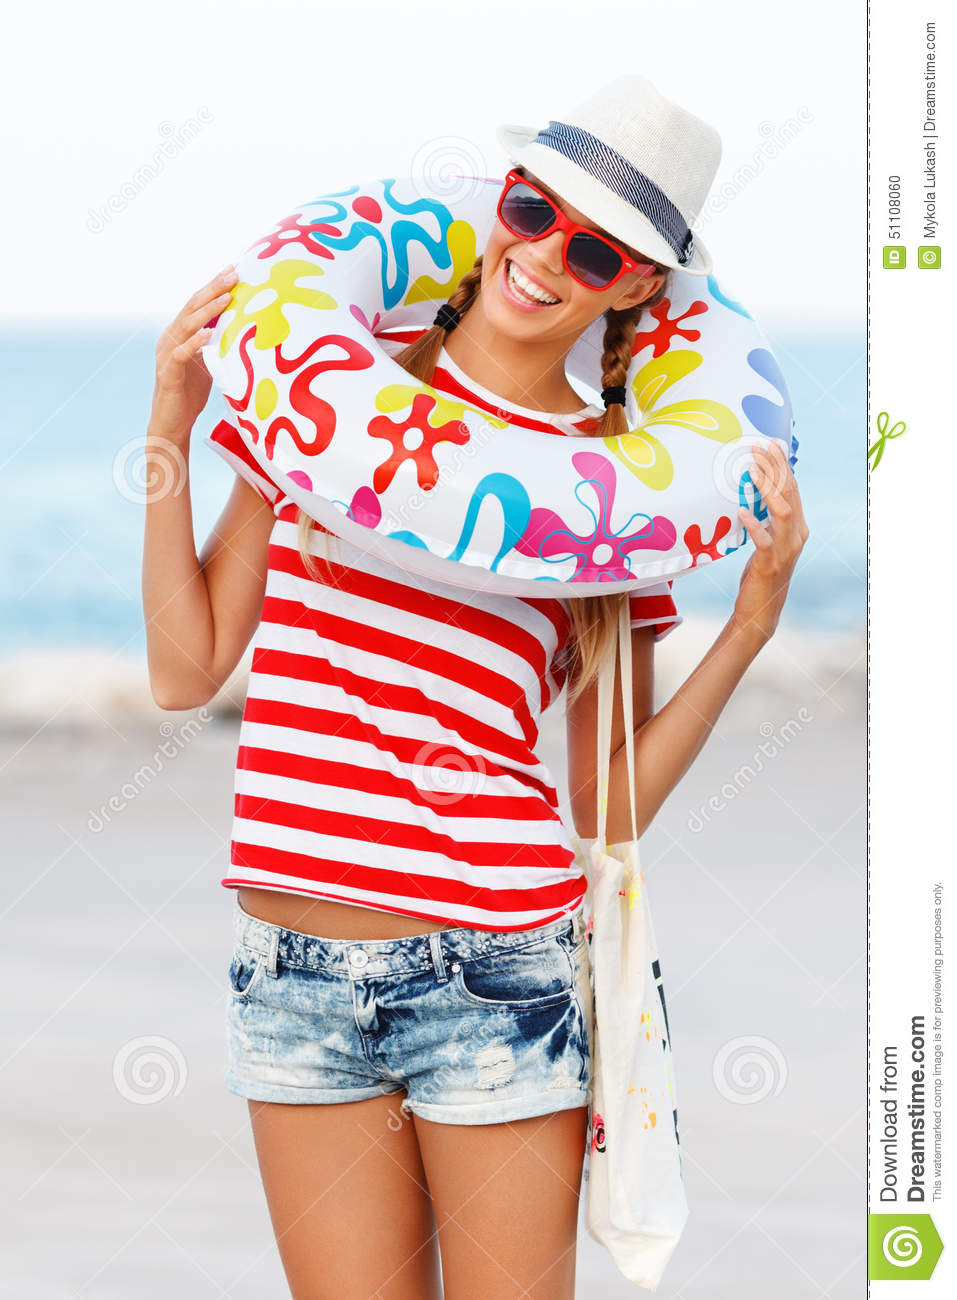 Beach woman happy and colorful wearing sunglasses and beach hat having summer fun during travel holidays vacation